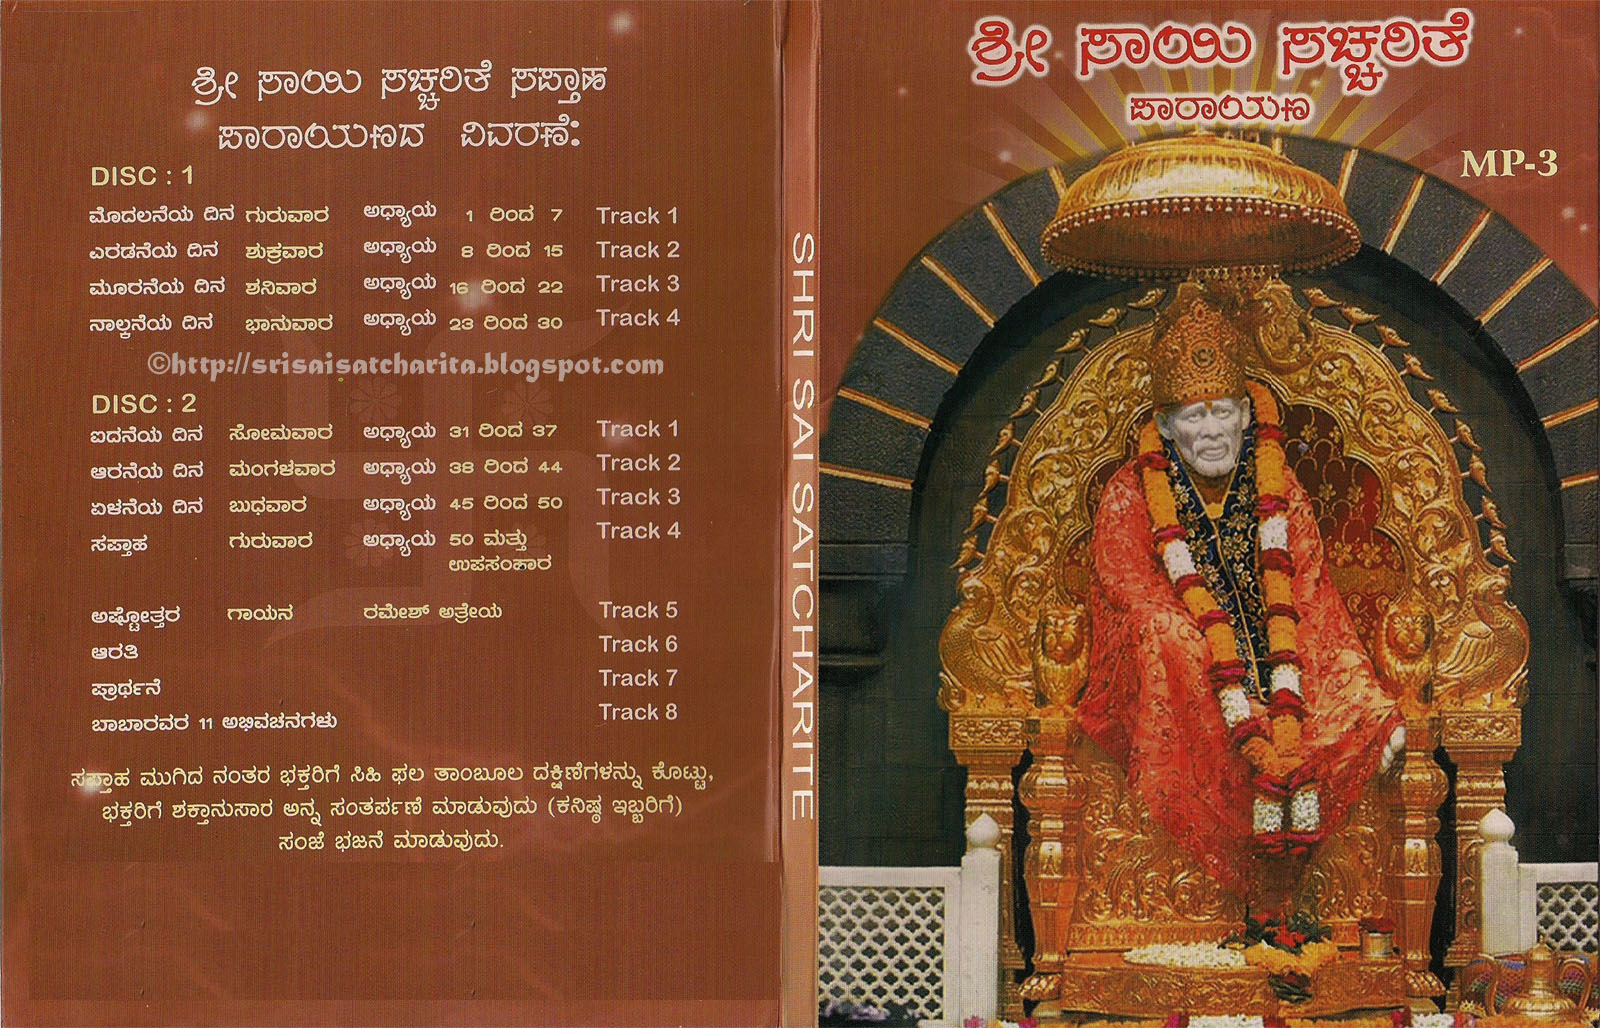 Download Mp3 Audio of The Sri Sai SatCharita by Chapter